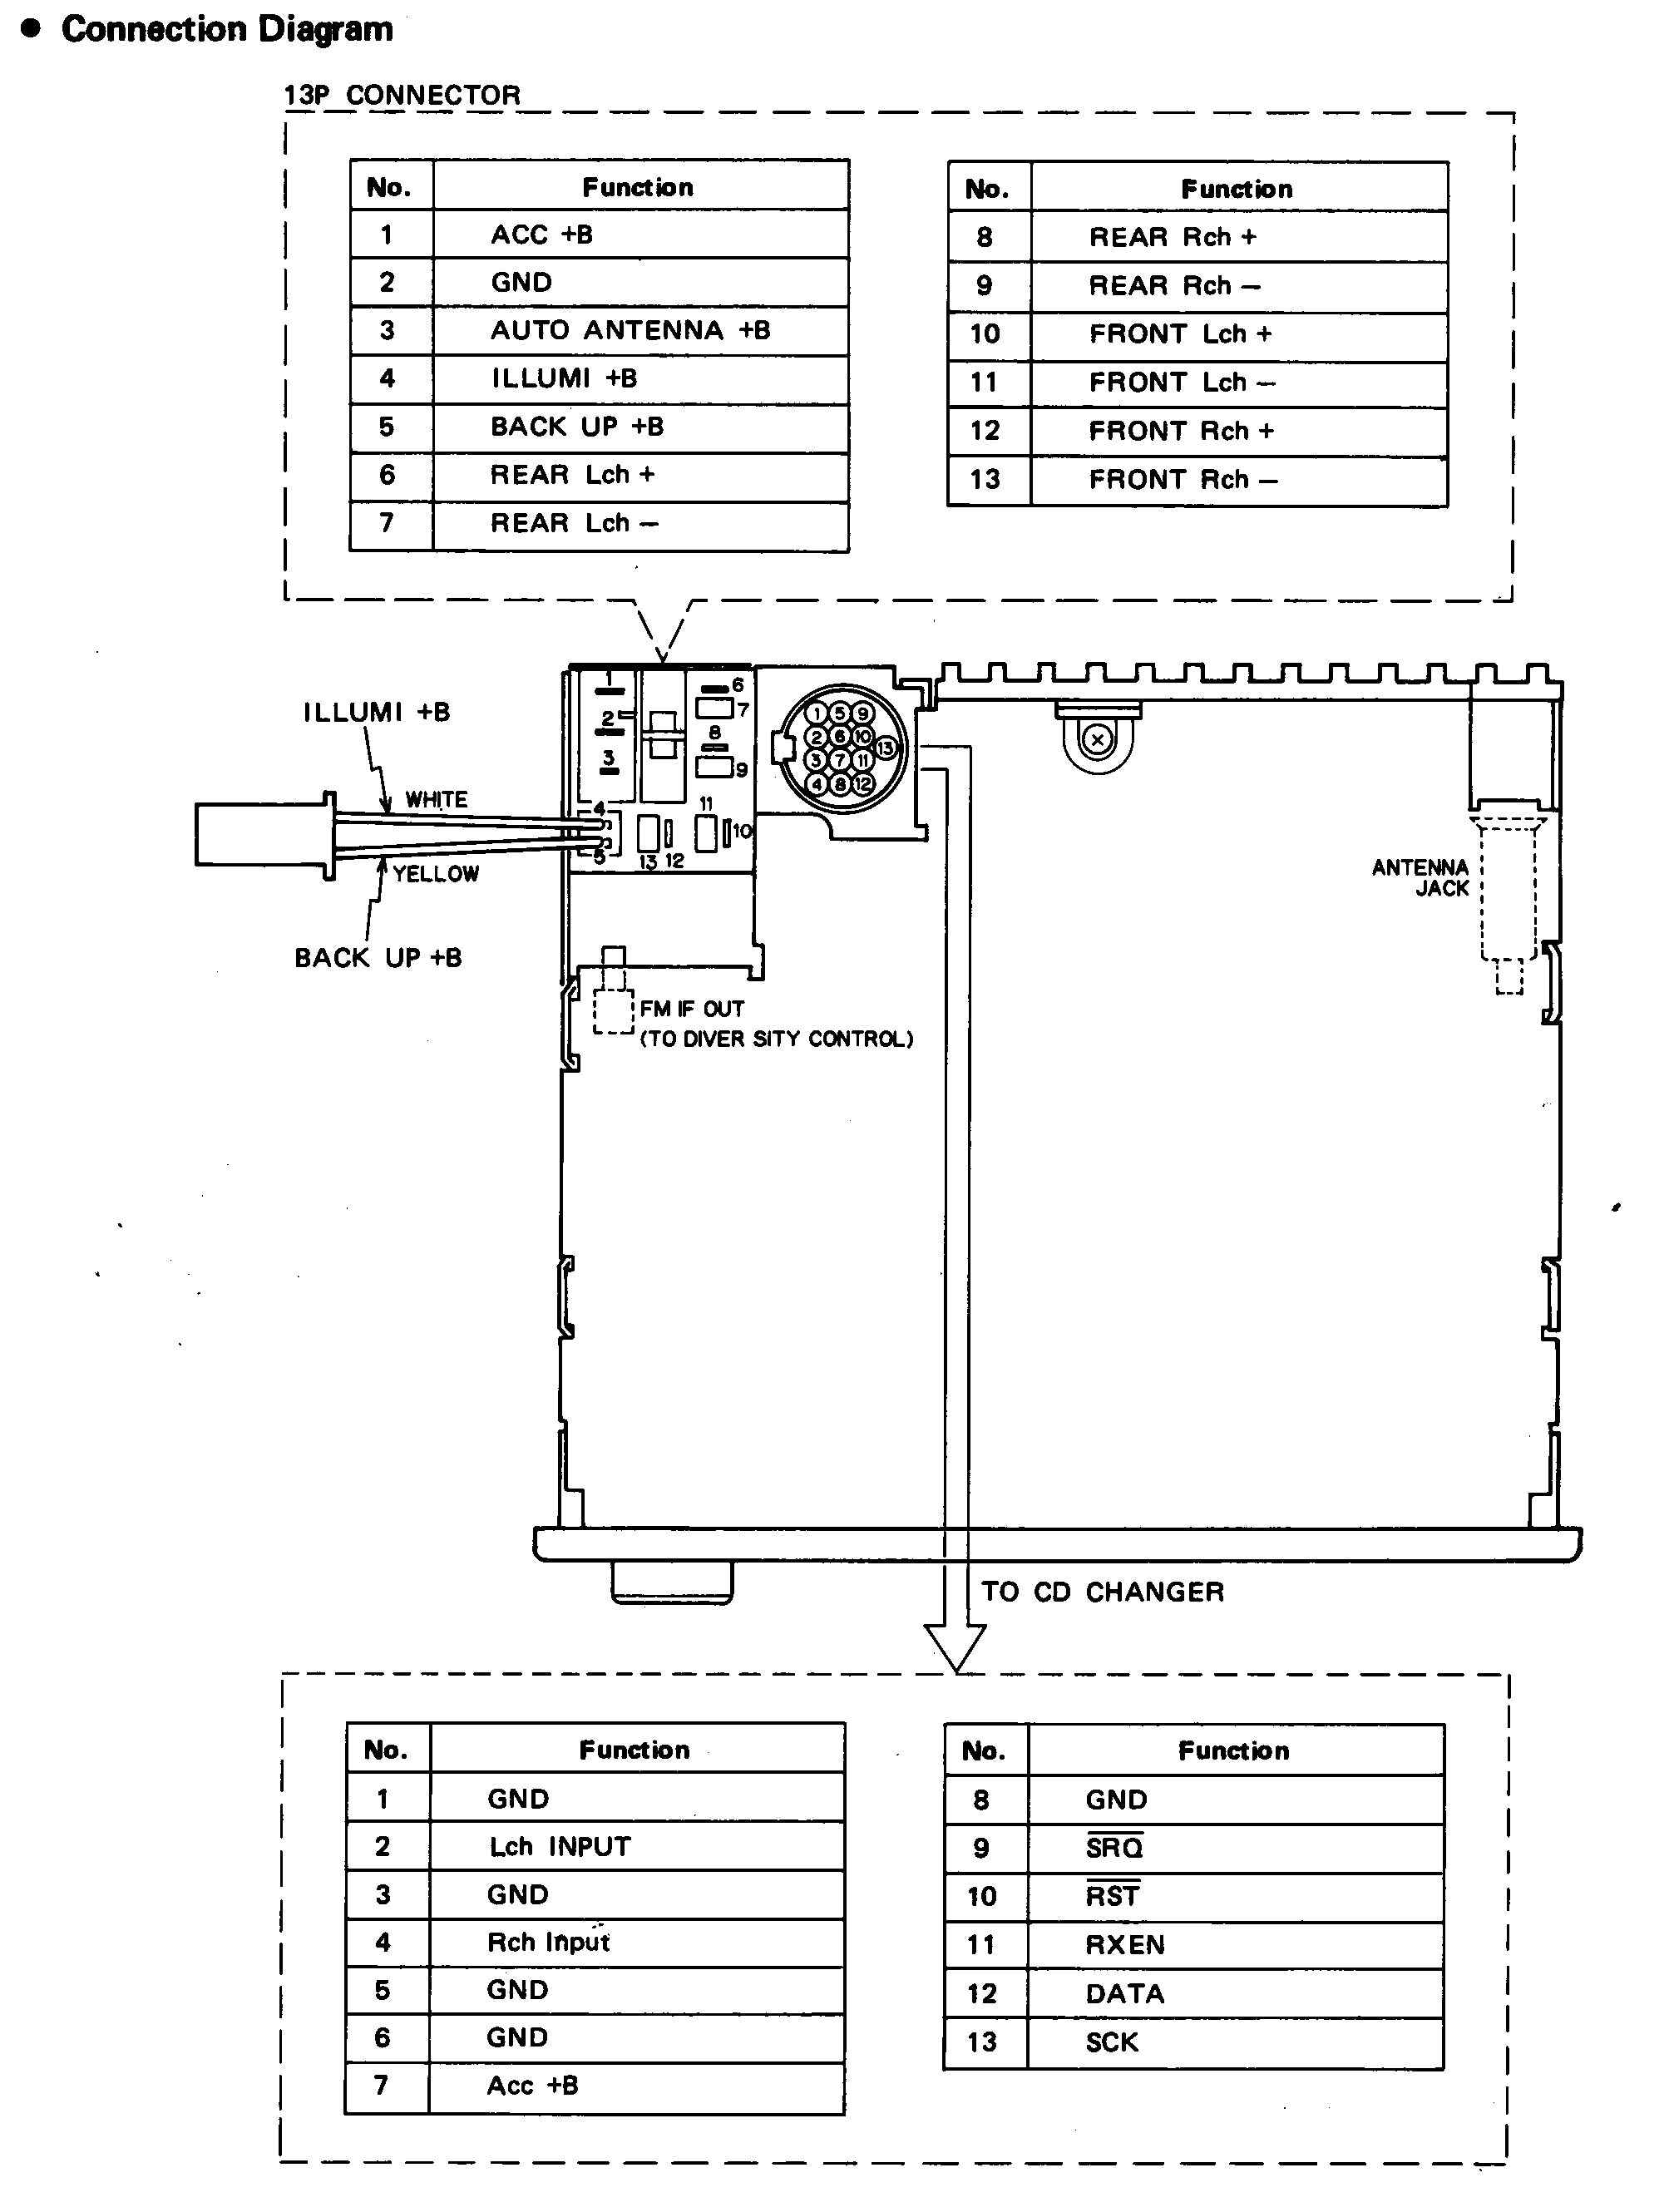 Stereo Speaker Amplifier Wiring Diagram Wiring Diagram Sample 2 Channel Amplifier  Wiring Diagram Audio Amplifier Wiring Diagram